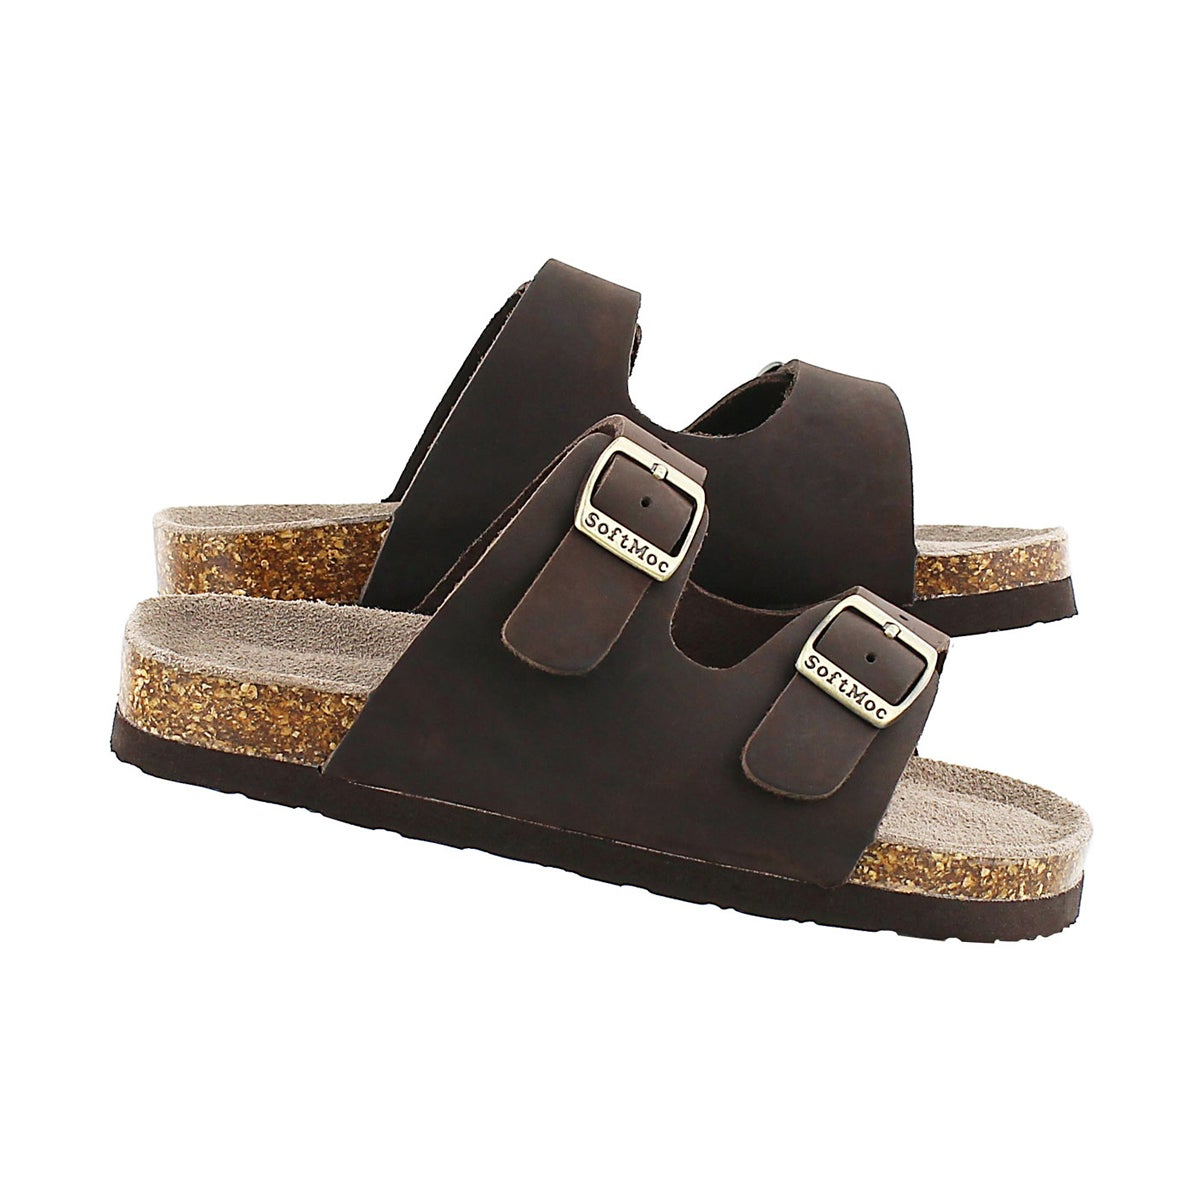 Kds Aurora 2 brown 2 strap slide sandal